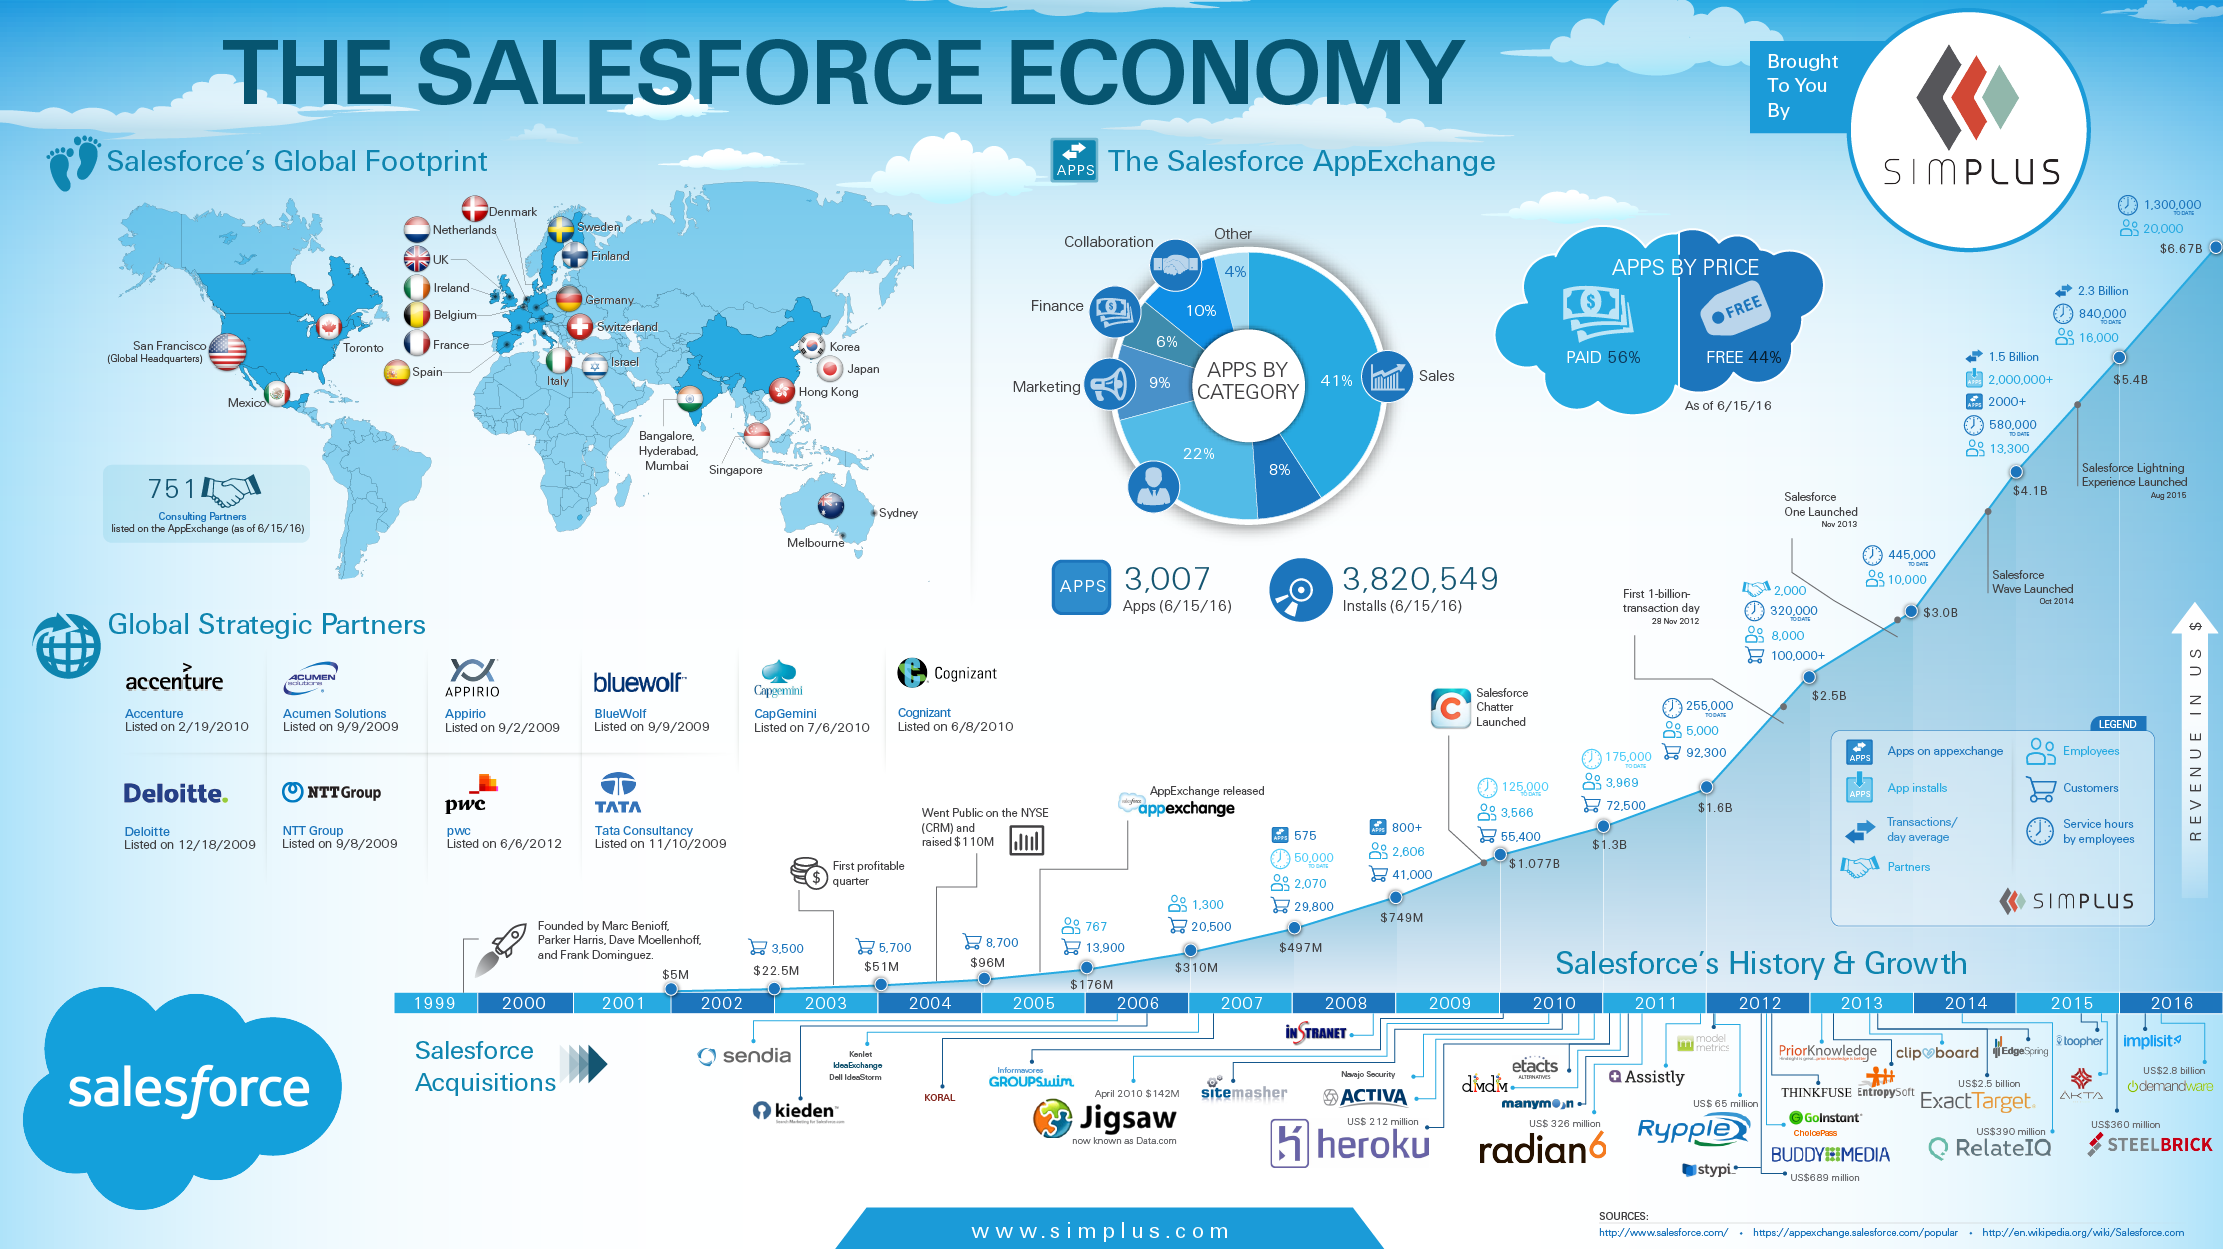 Salesforce: Five Compelling Ways To Use Salesforce Campaigns